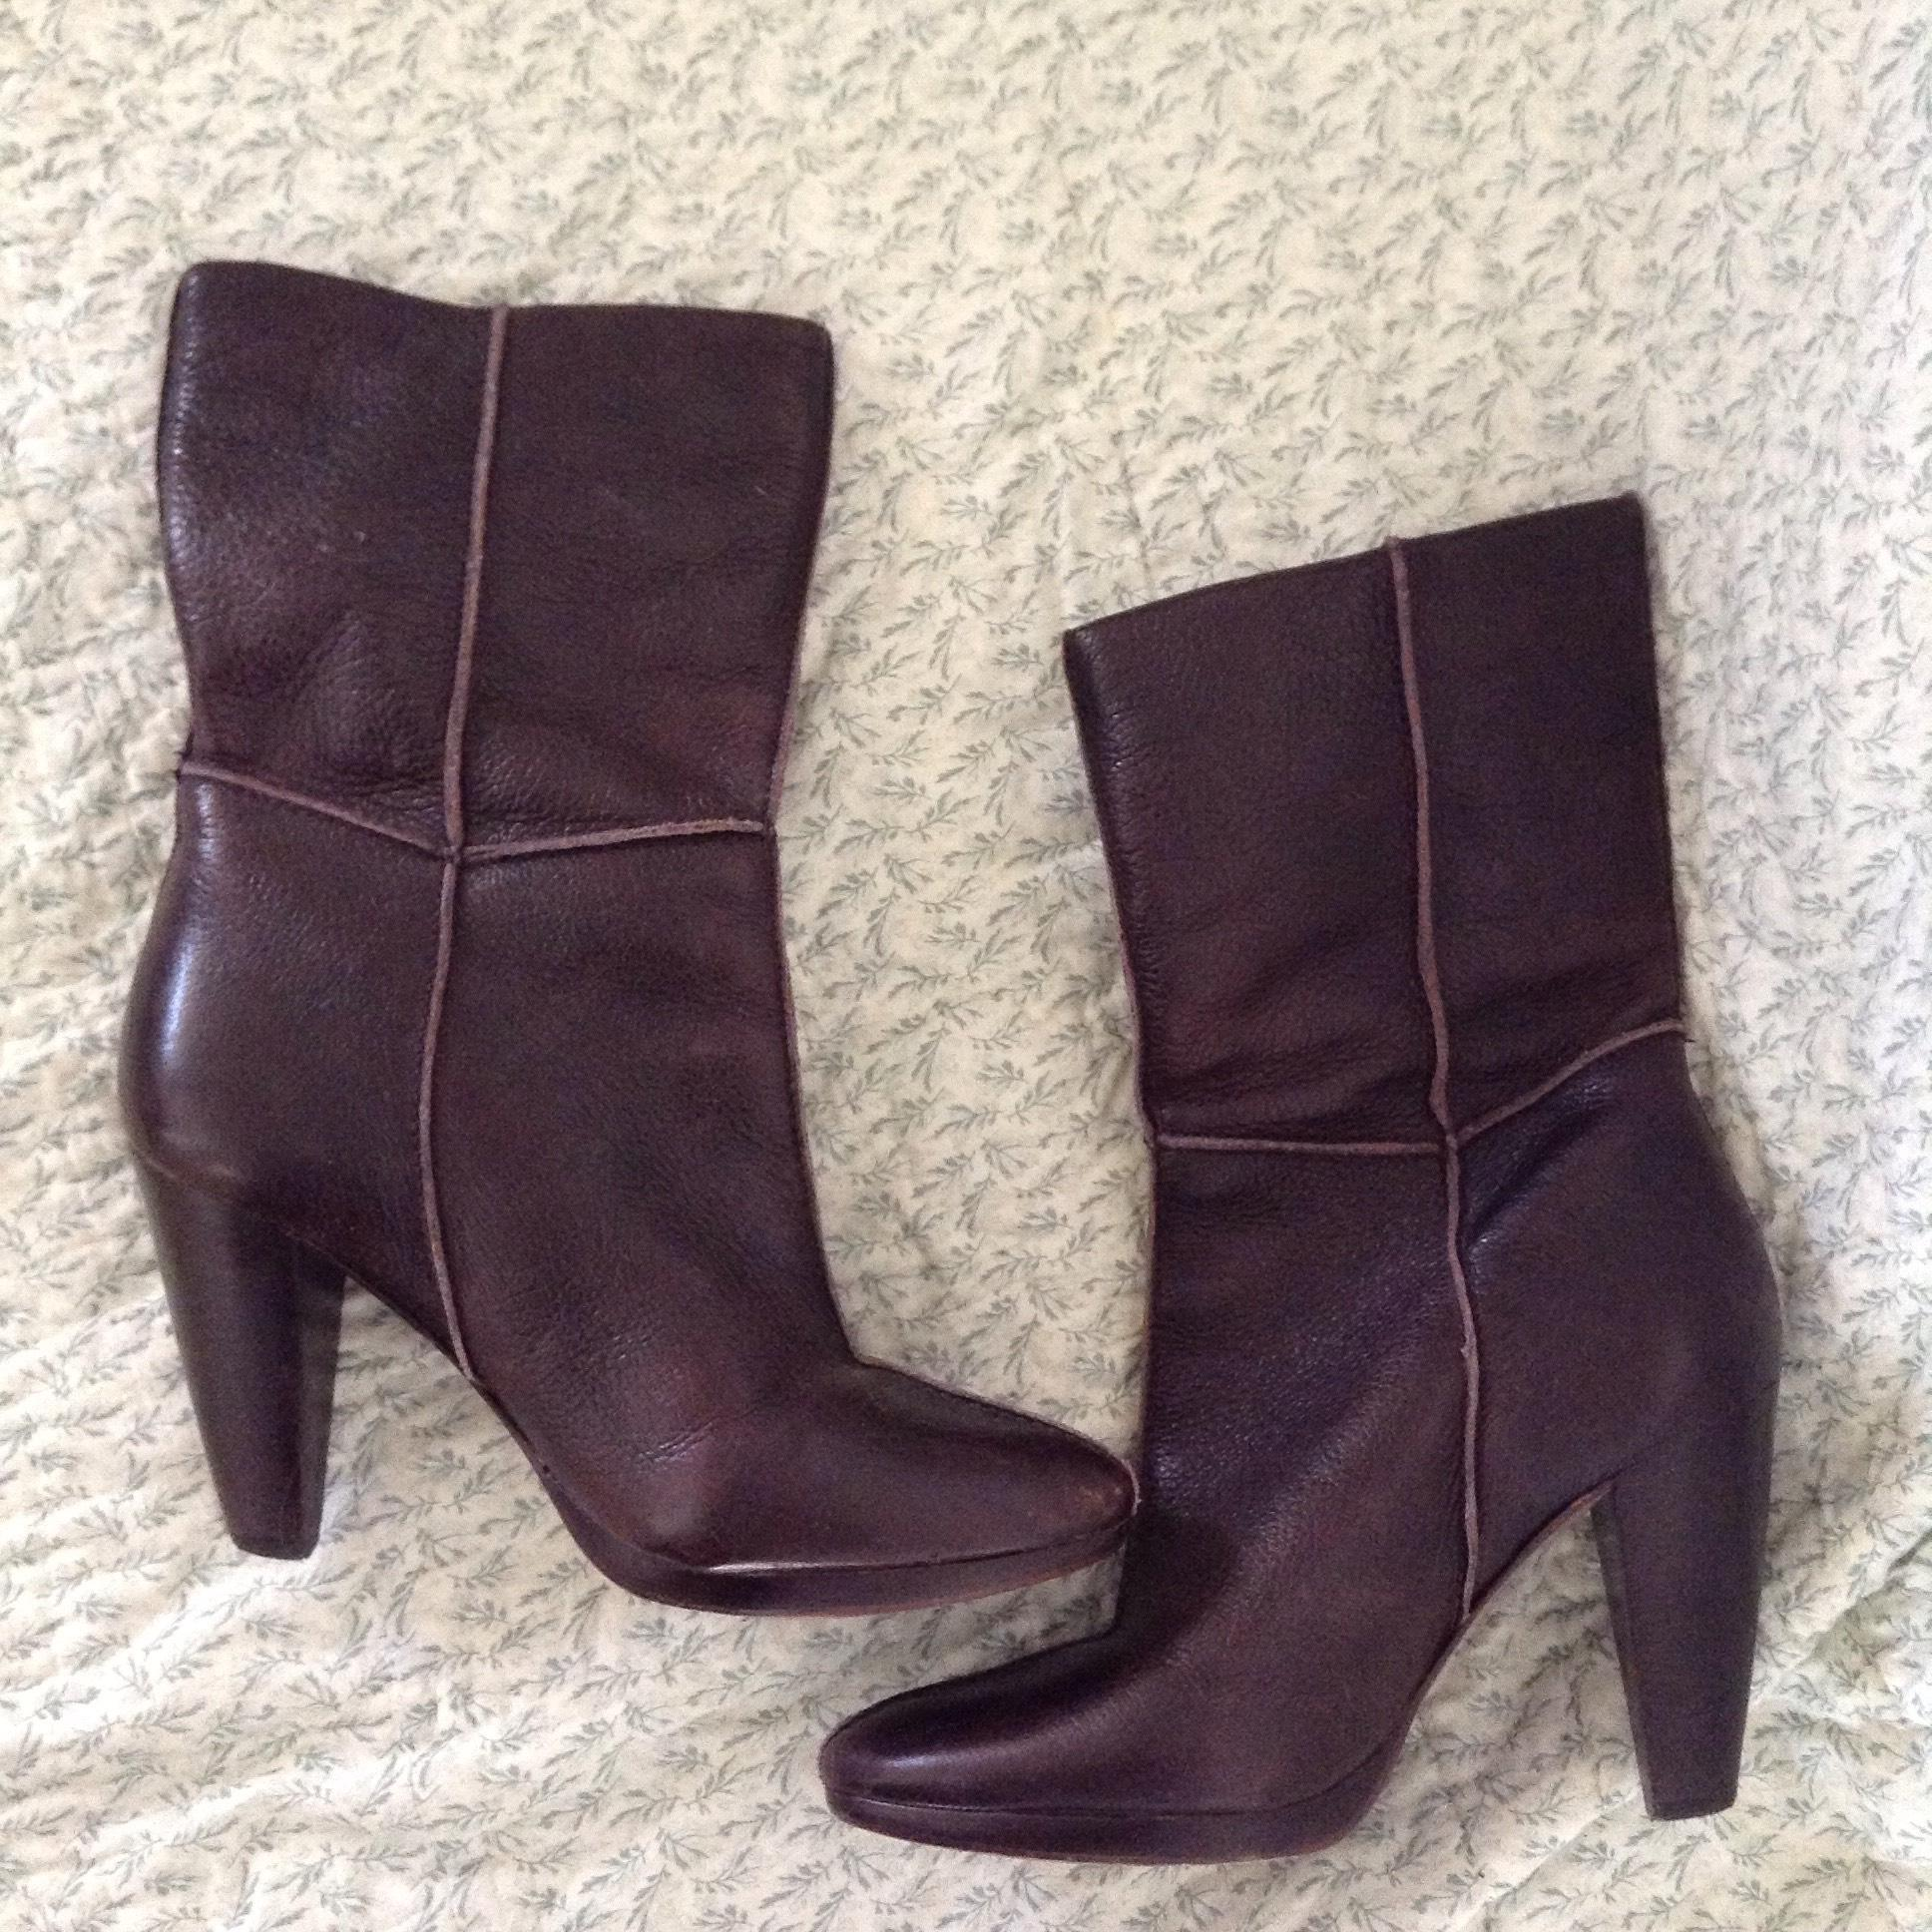 arturo chiang brown boots on sale 64 boots